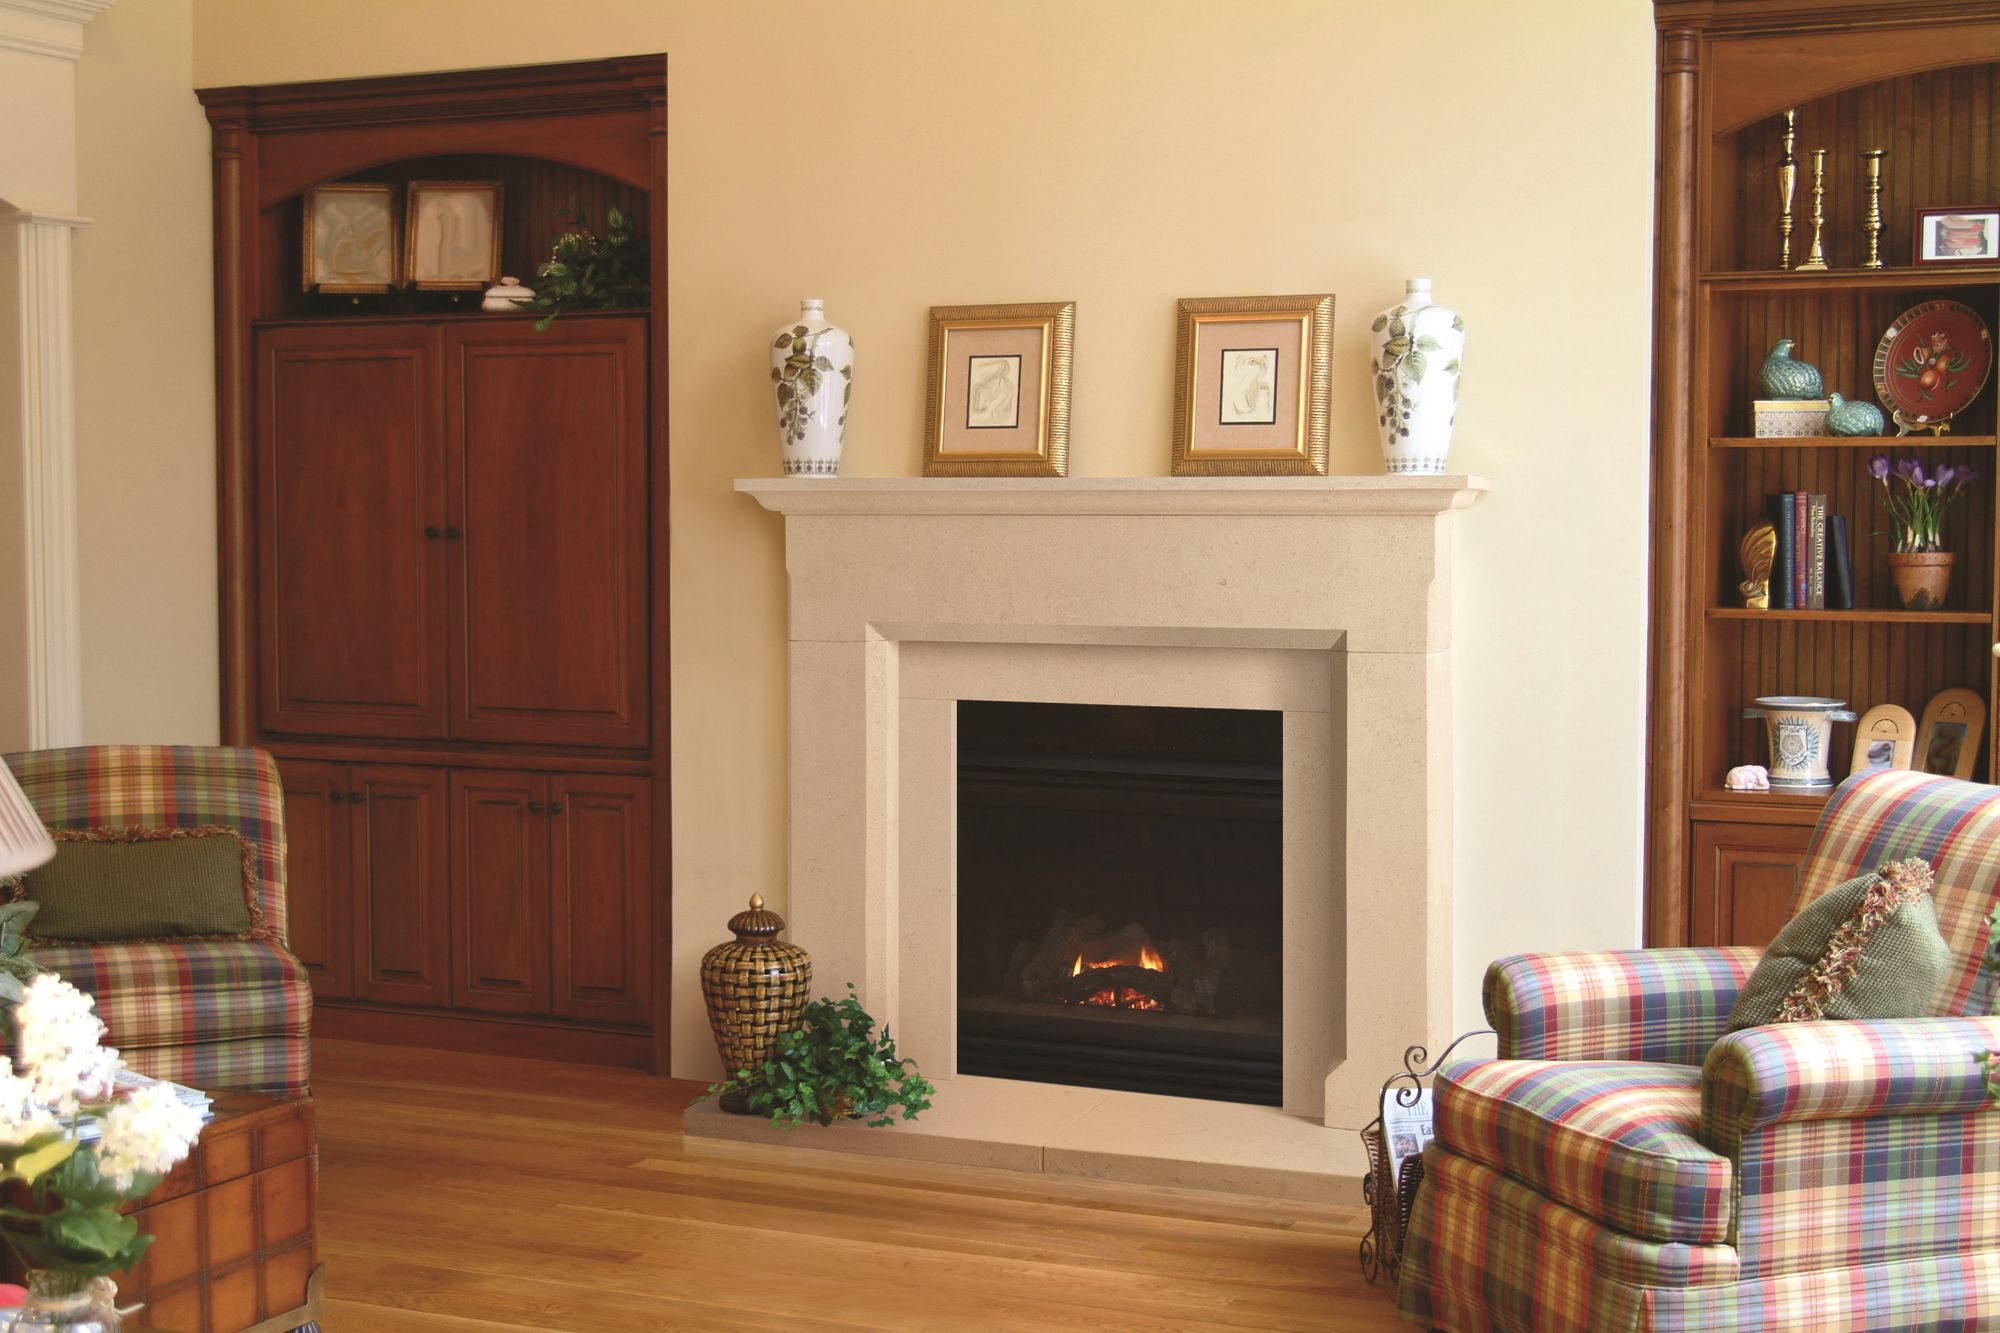 The Rochford Bathstone Fireplace